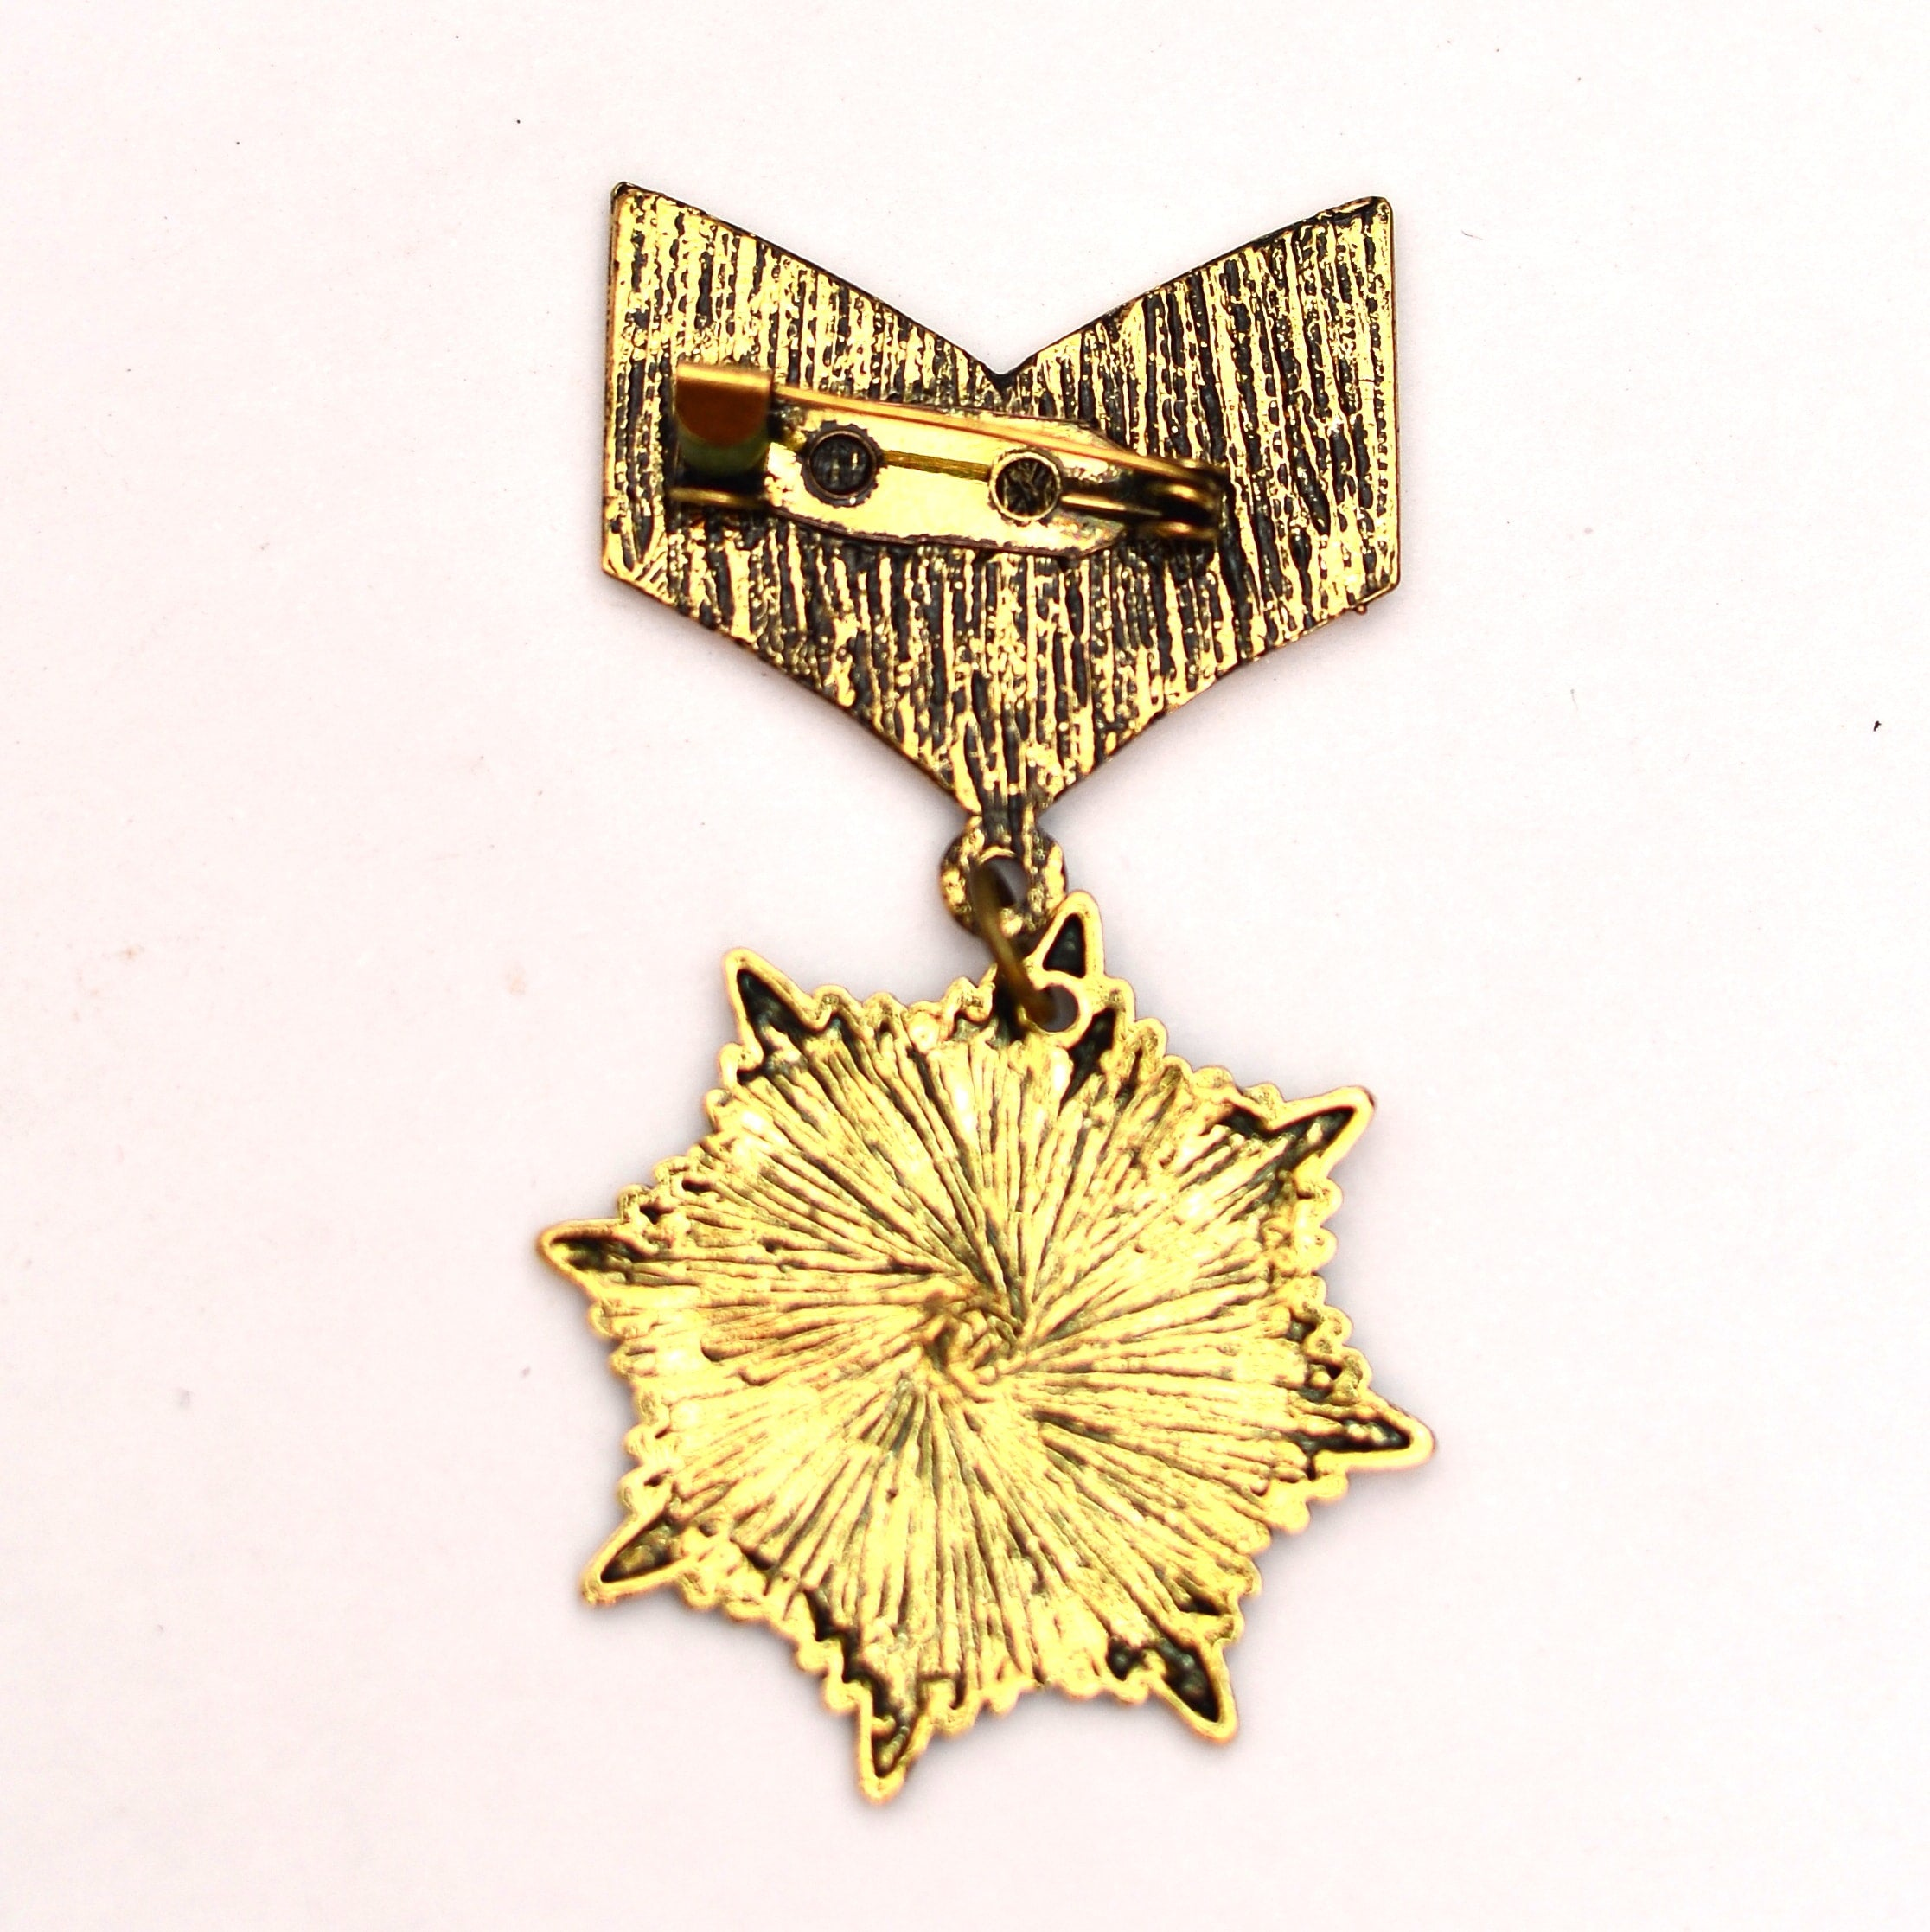 The Medal - TheTailor69